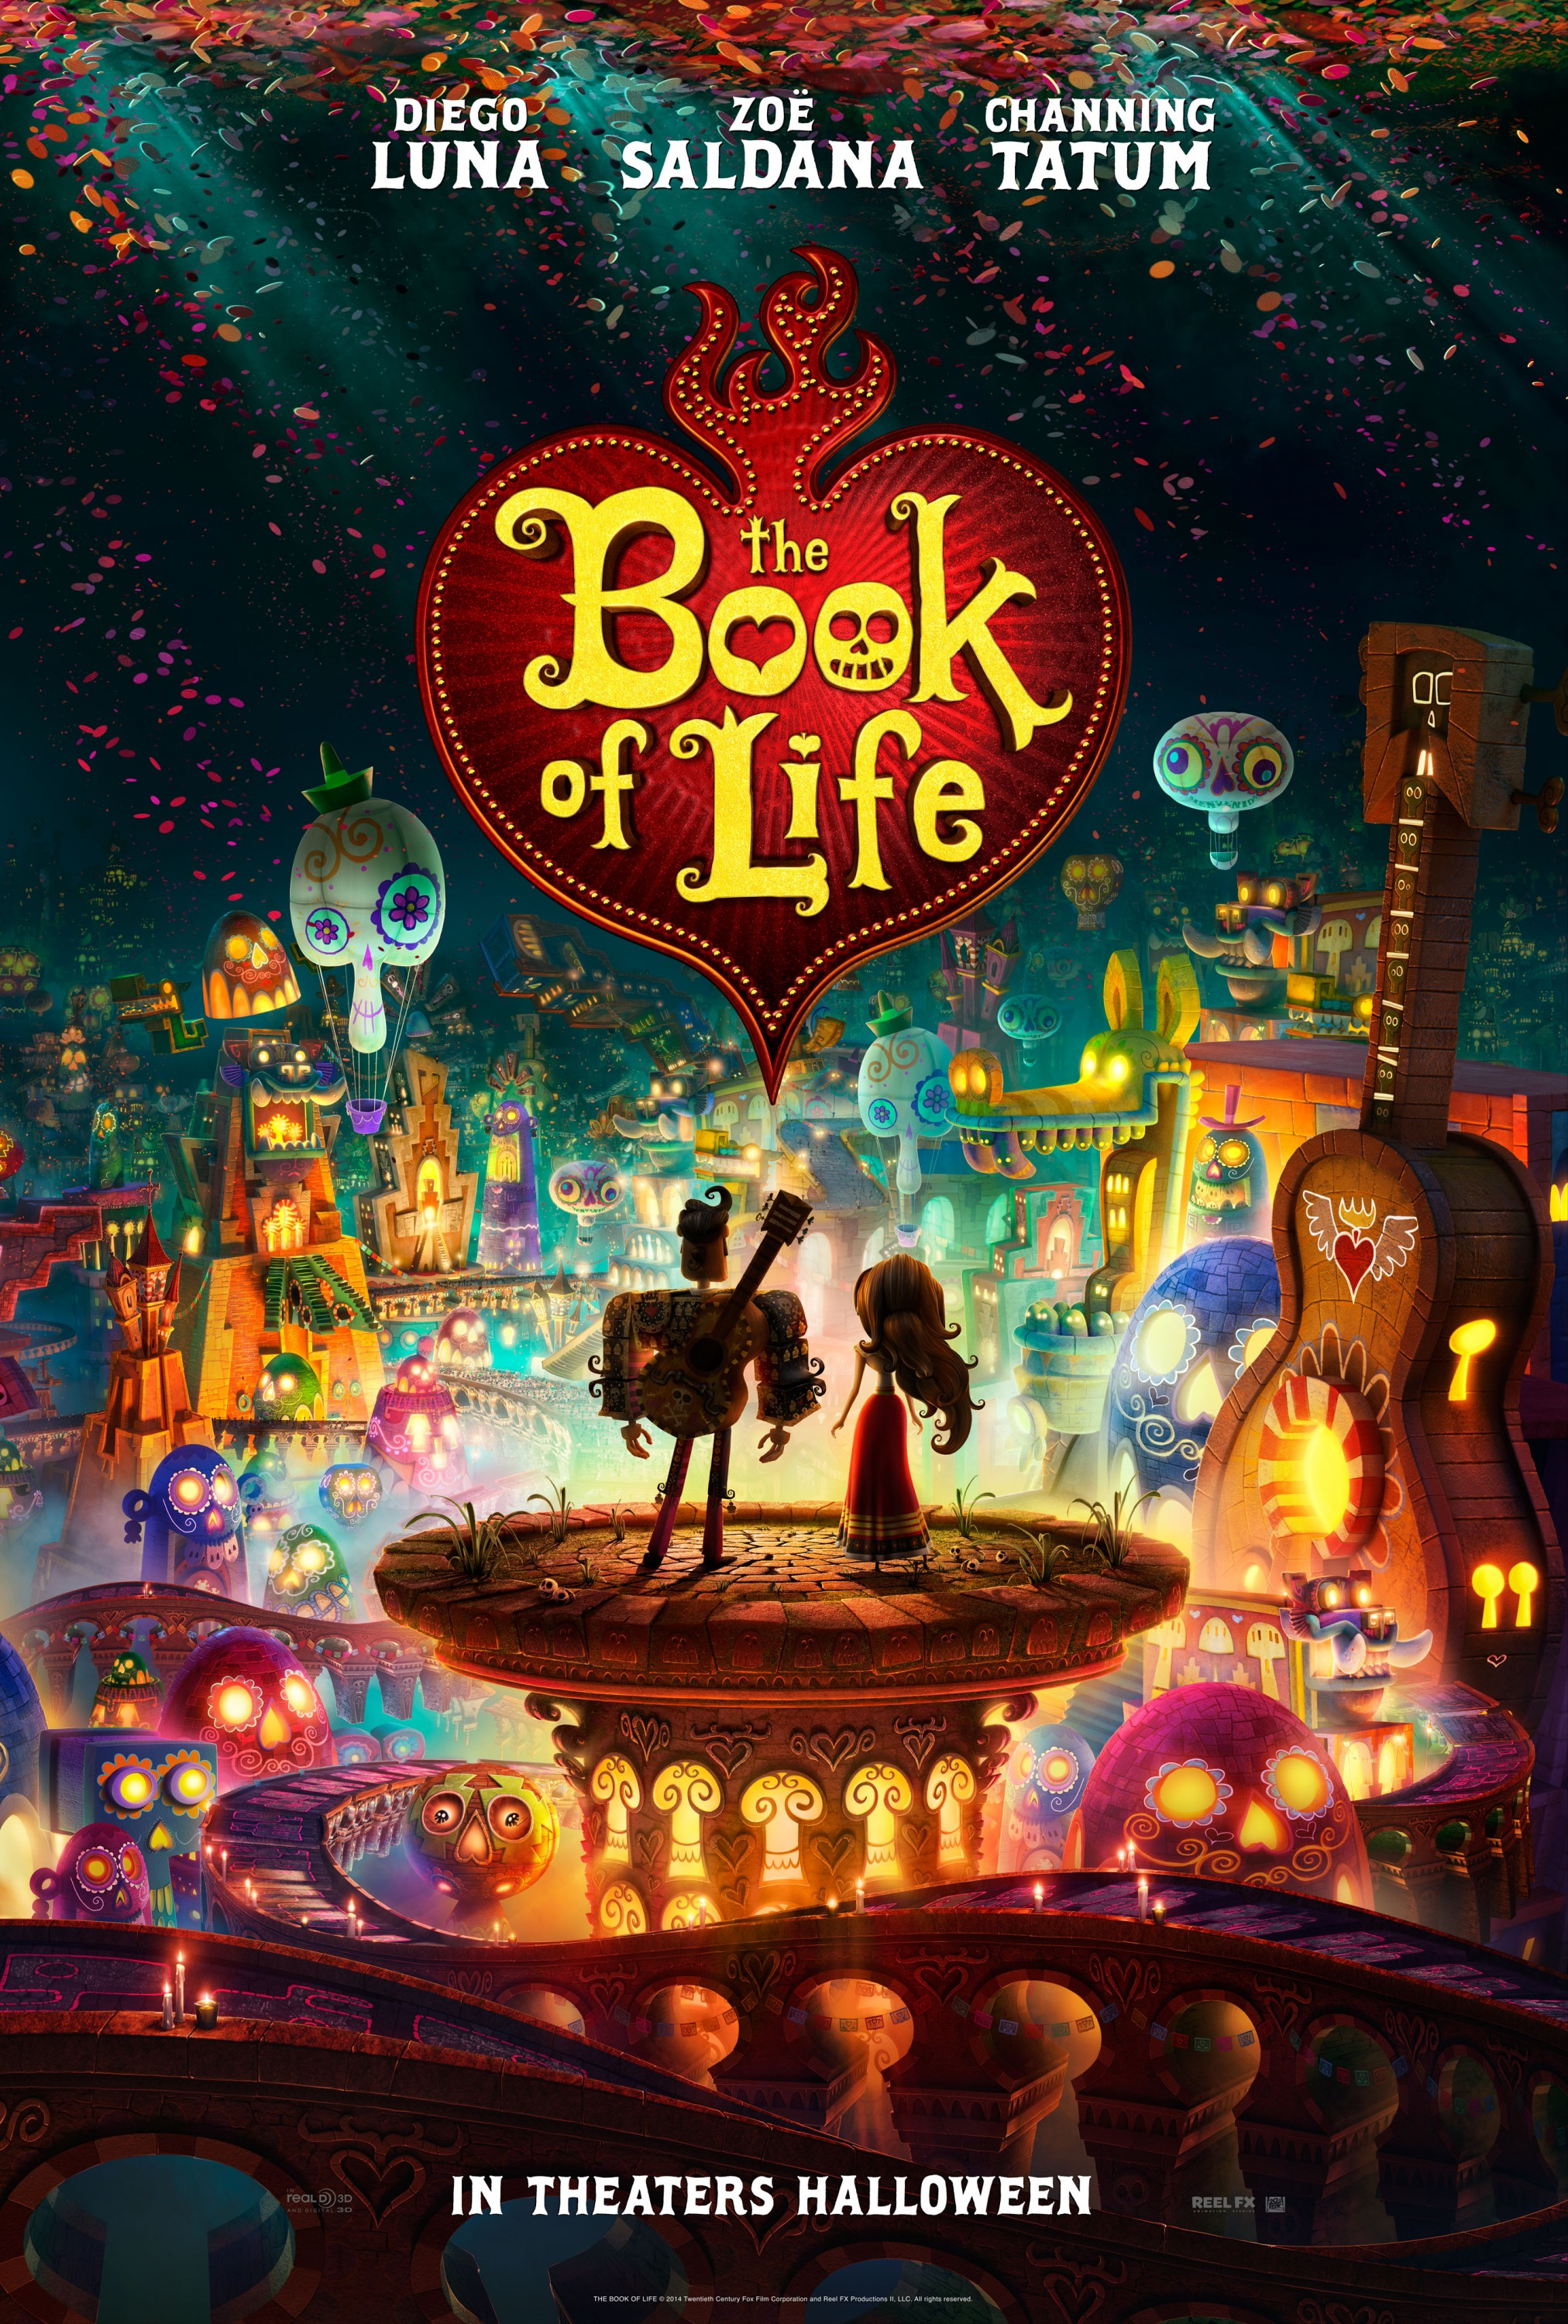 The Book of Life-Official Poster Banner PROMO XXLG-29MAIO2014